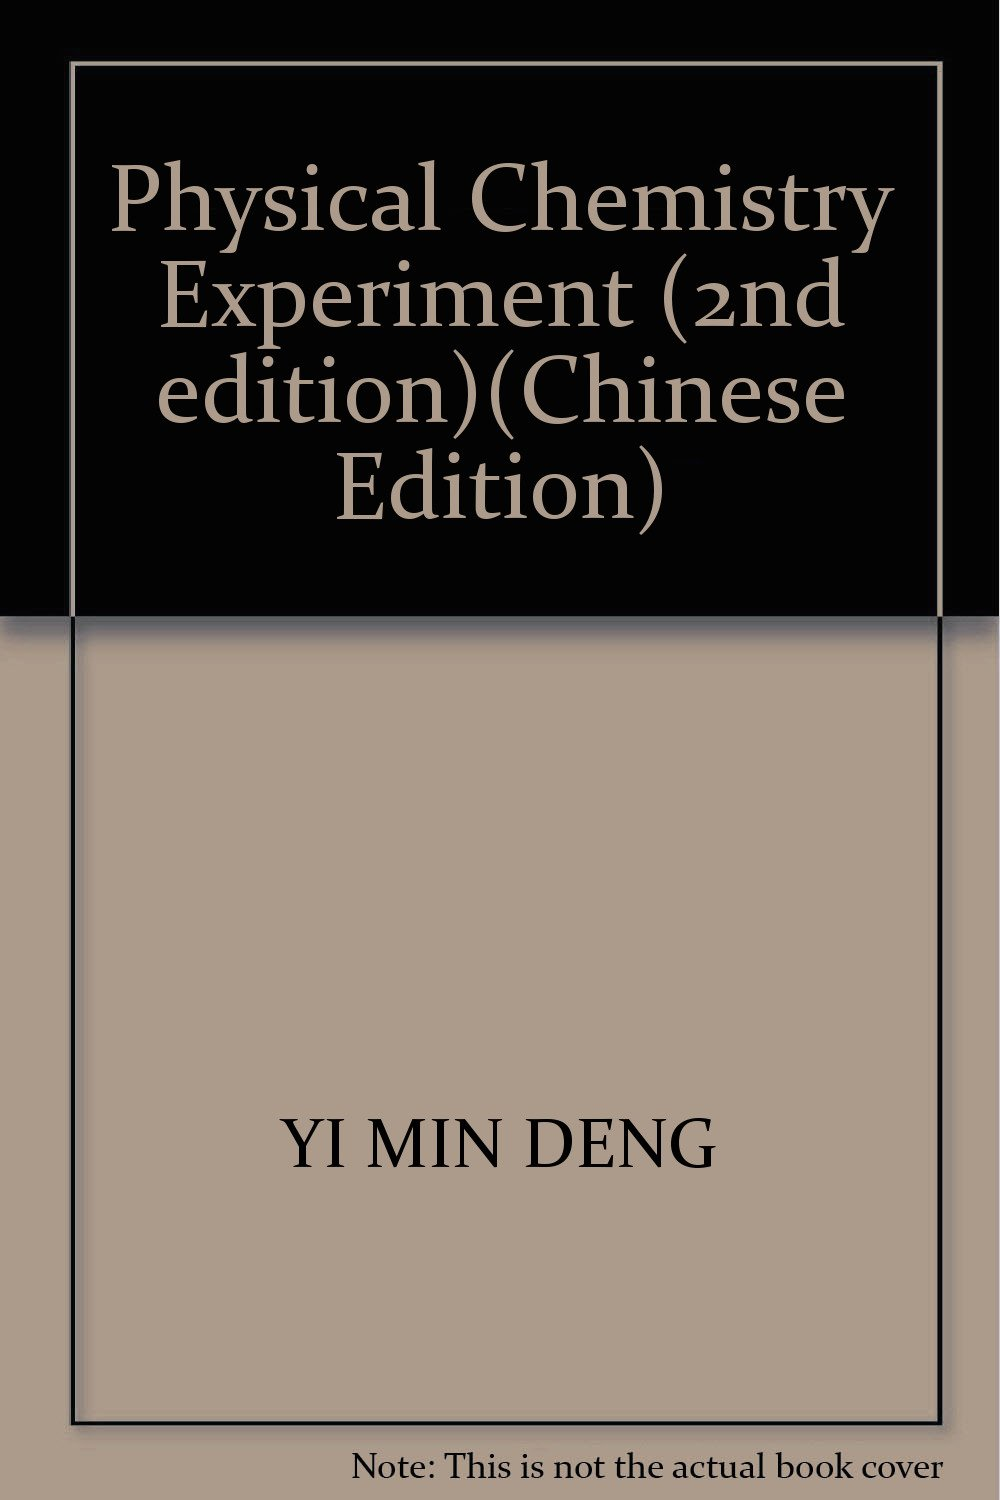 Download Physical Chemistry Experiment (2nd edition)(Chinese Edition) PDF